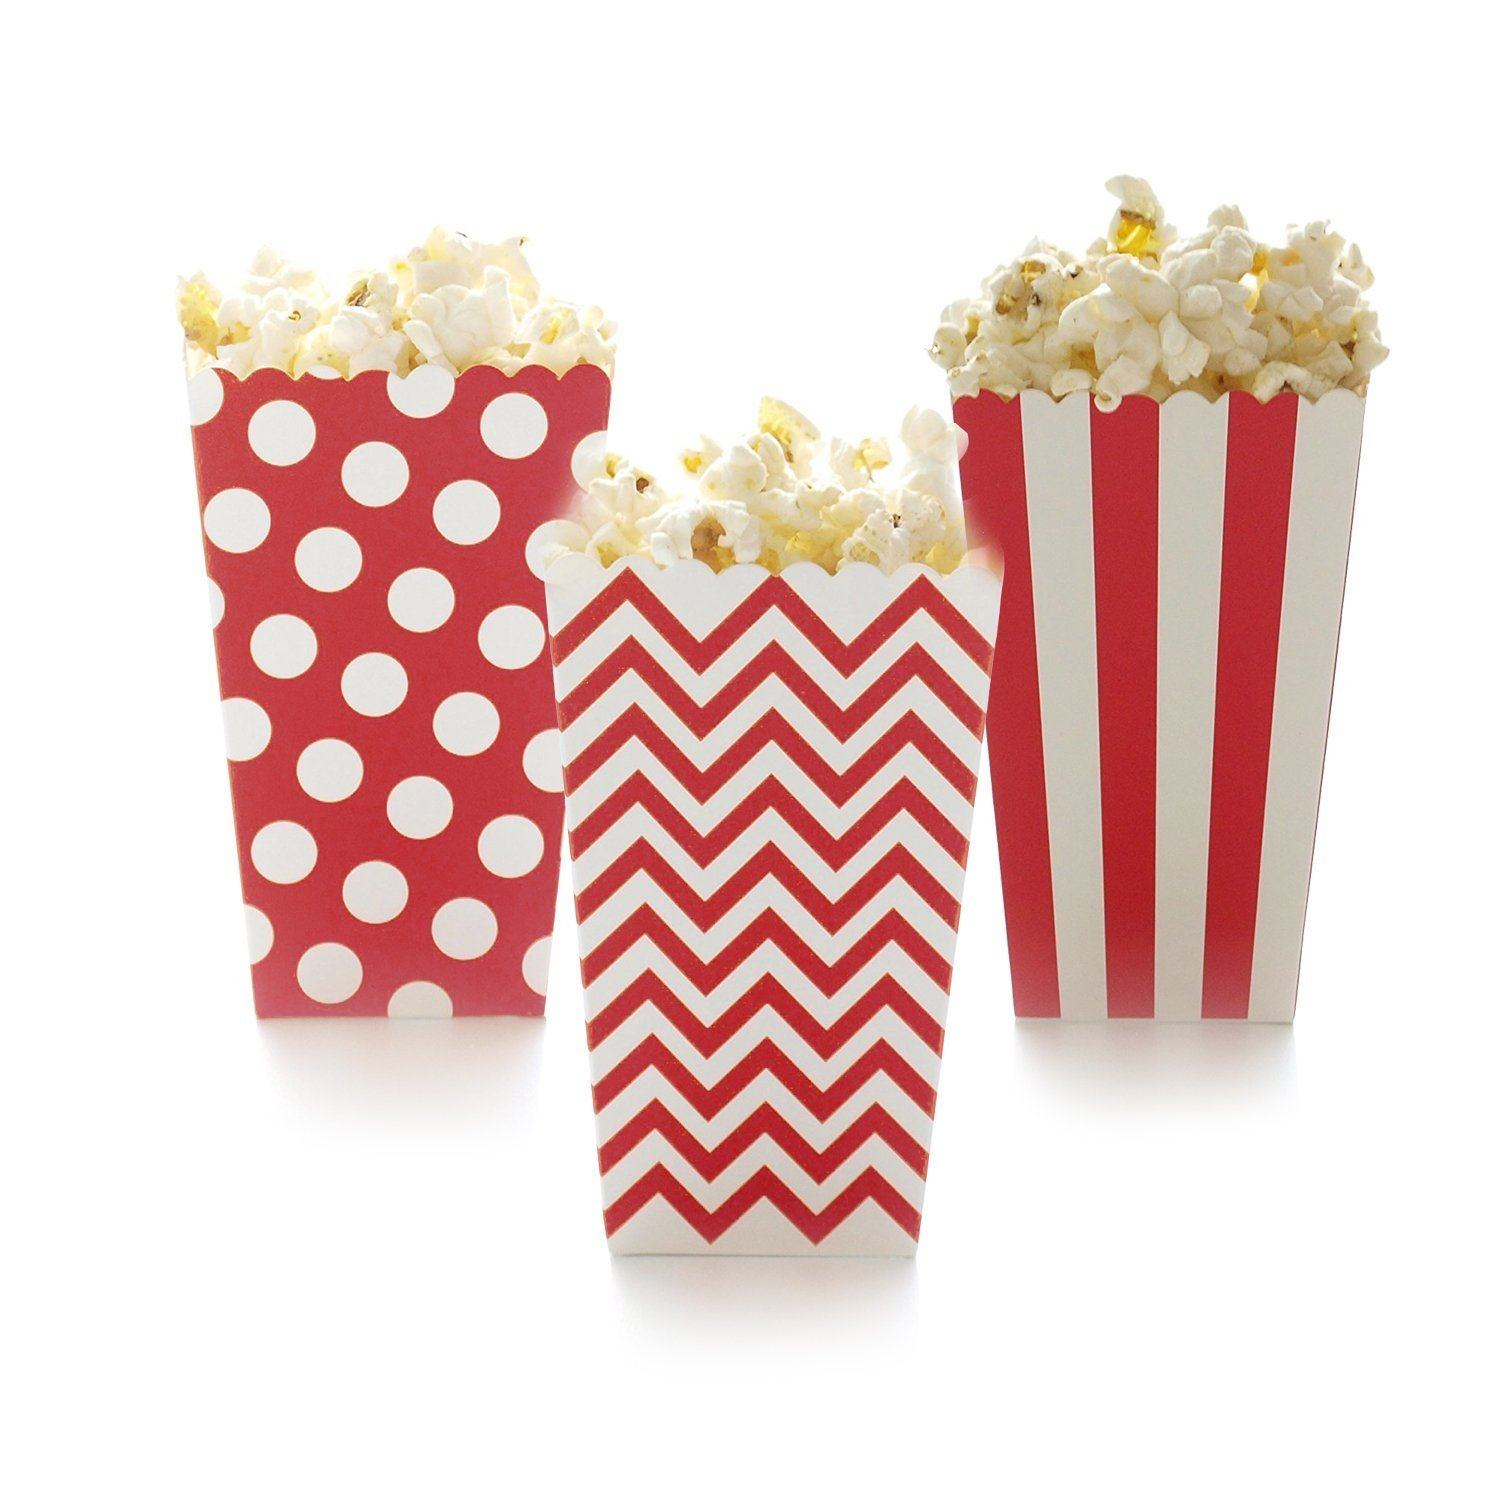 Famoby 36 pcs red Movie party Paper Popcorn Boxes: Amazon.co.uk ...